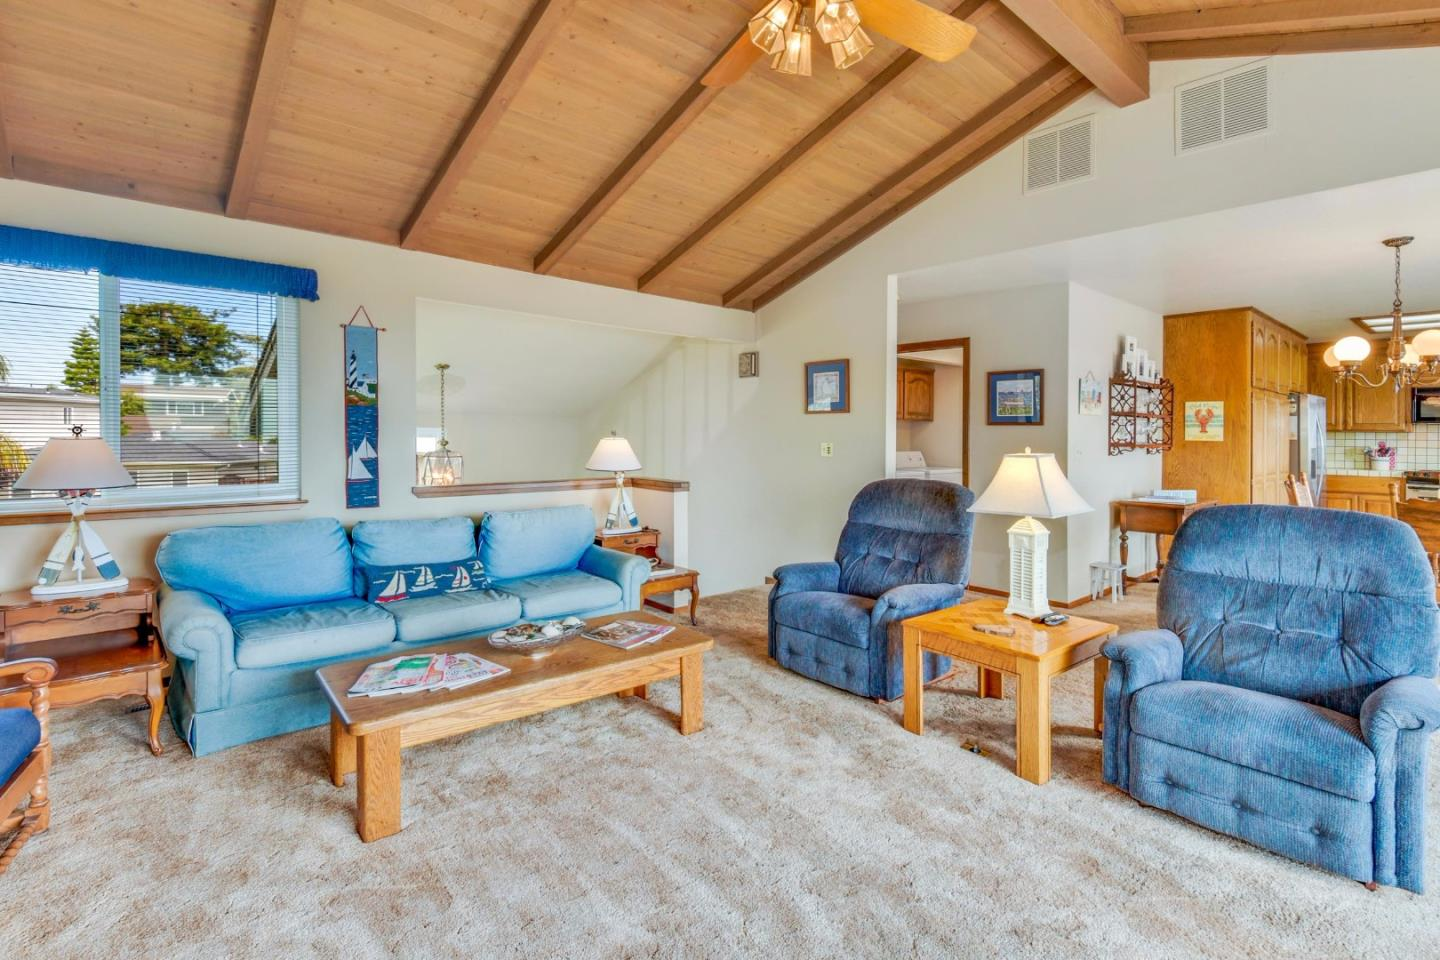 Additional photo for property listing at 513 Middlefield Drive  Aptos, カリフォルニア 95003 アメリカ合衆国